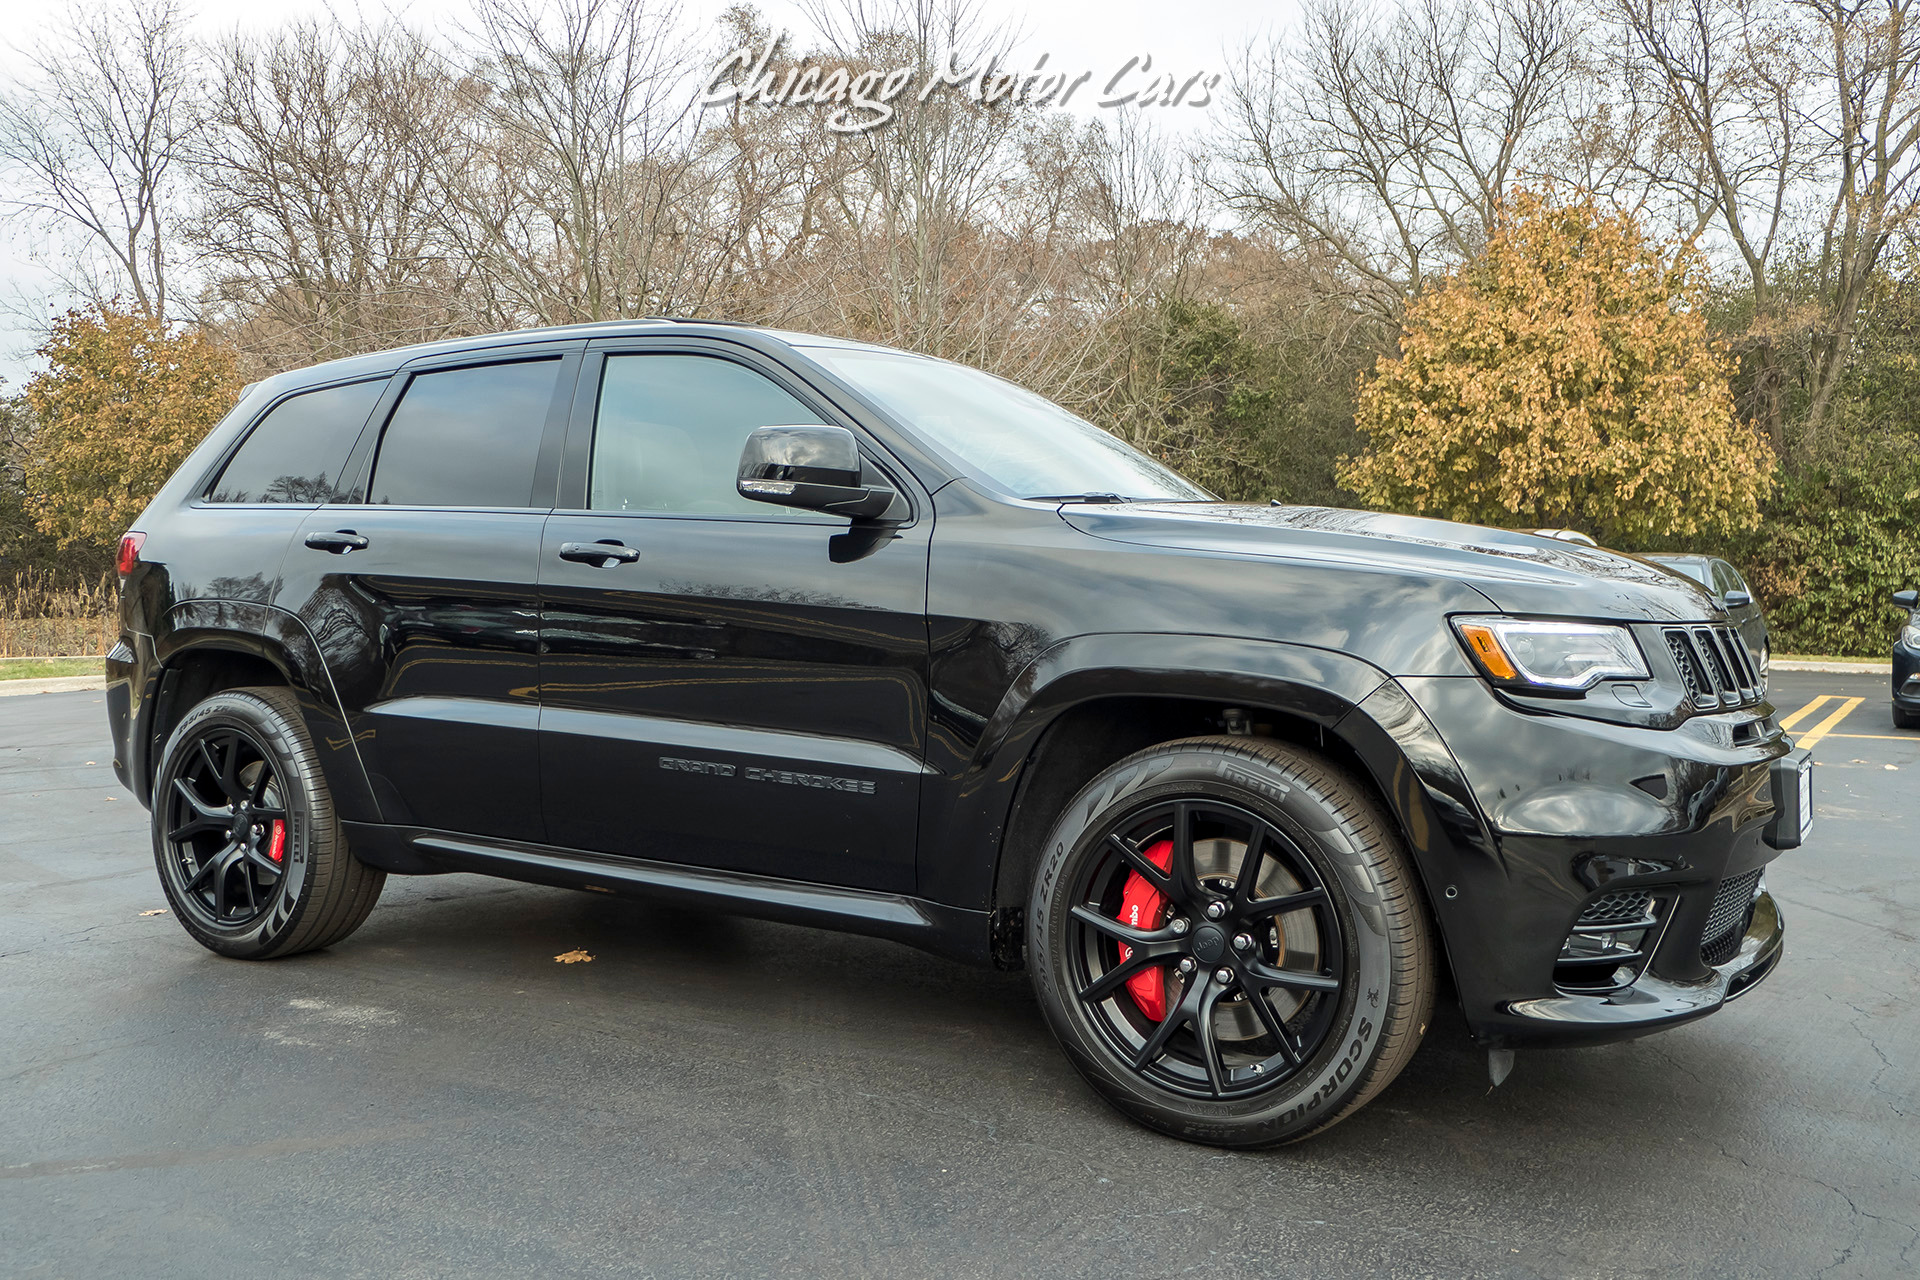 Used-2019-Jeep-Grand-Cherokee-SRT-AWD-SUV-HIGH-PERFORMANCE-AUDIO-PACKGE